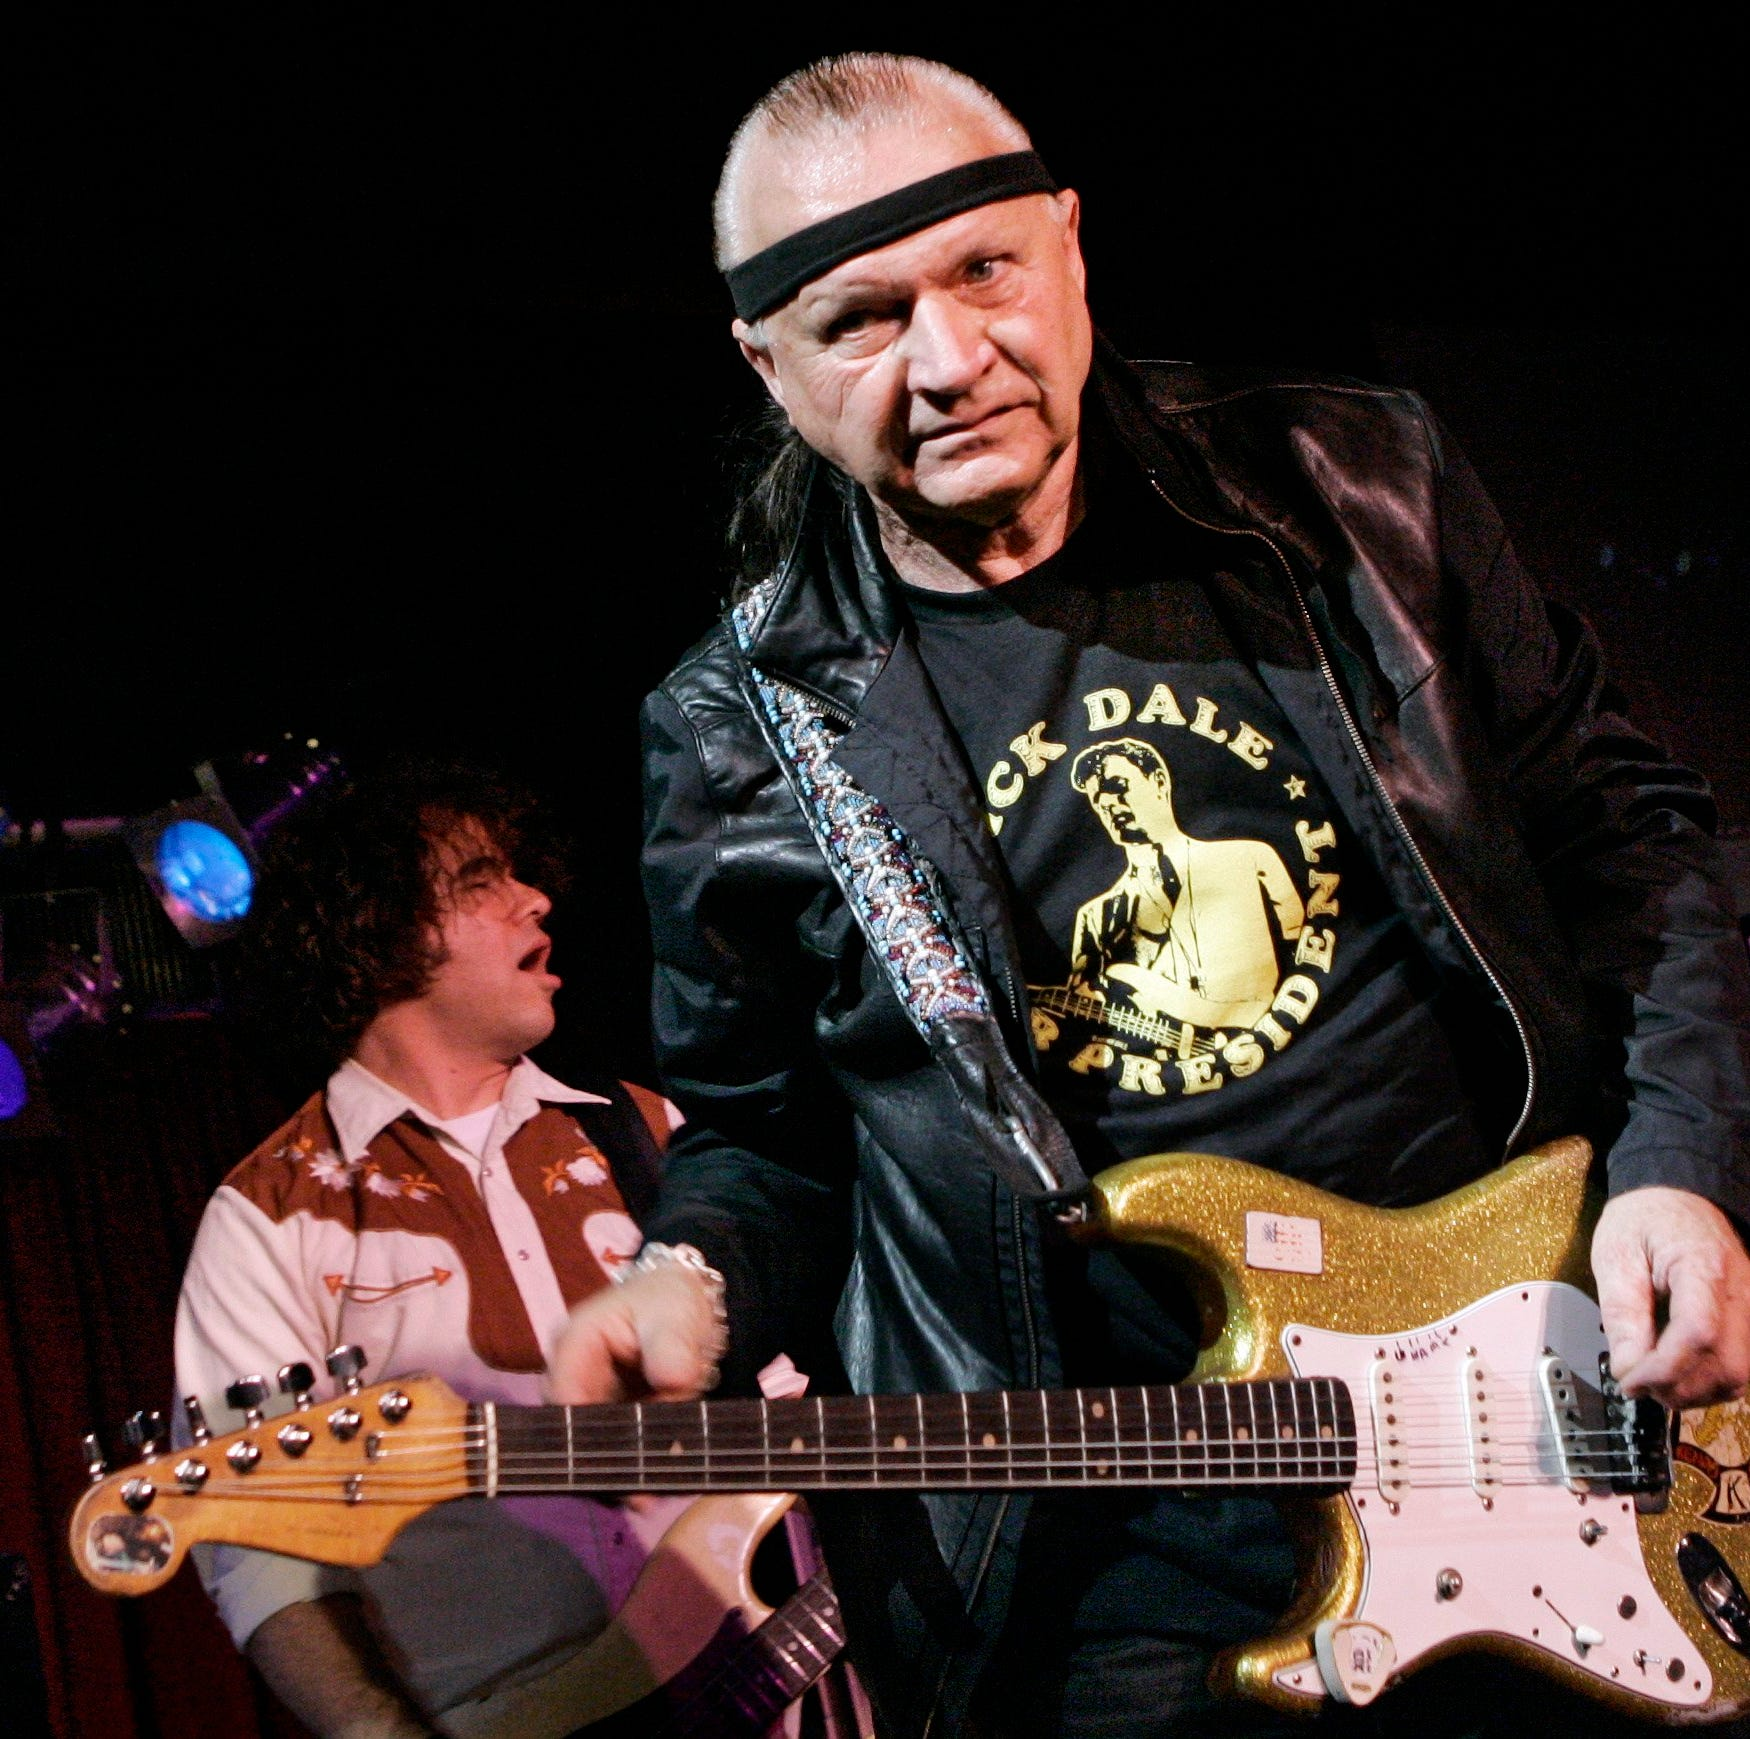 Dick Dale, the King of Surf Guitar, was also a king at the Jersey Shore